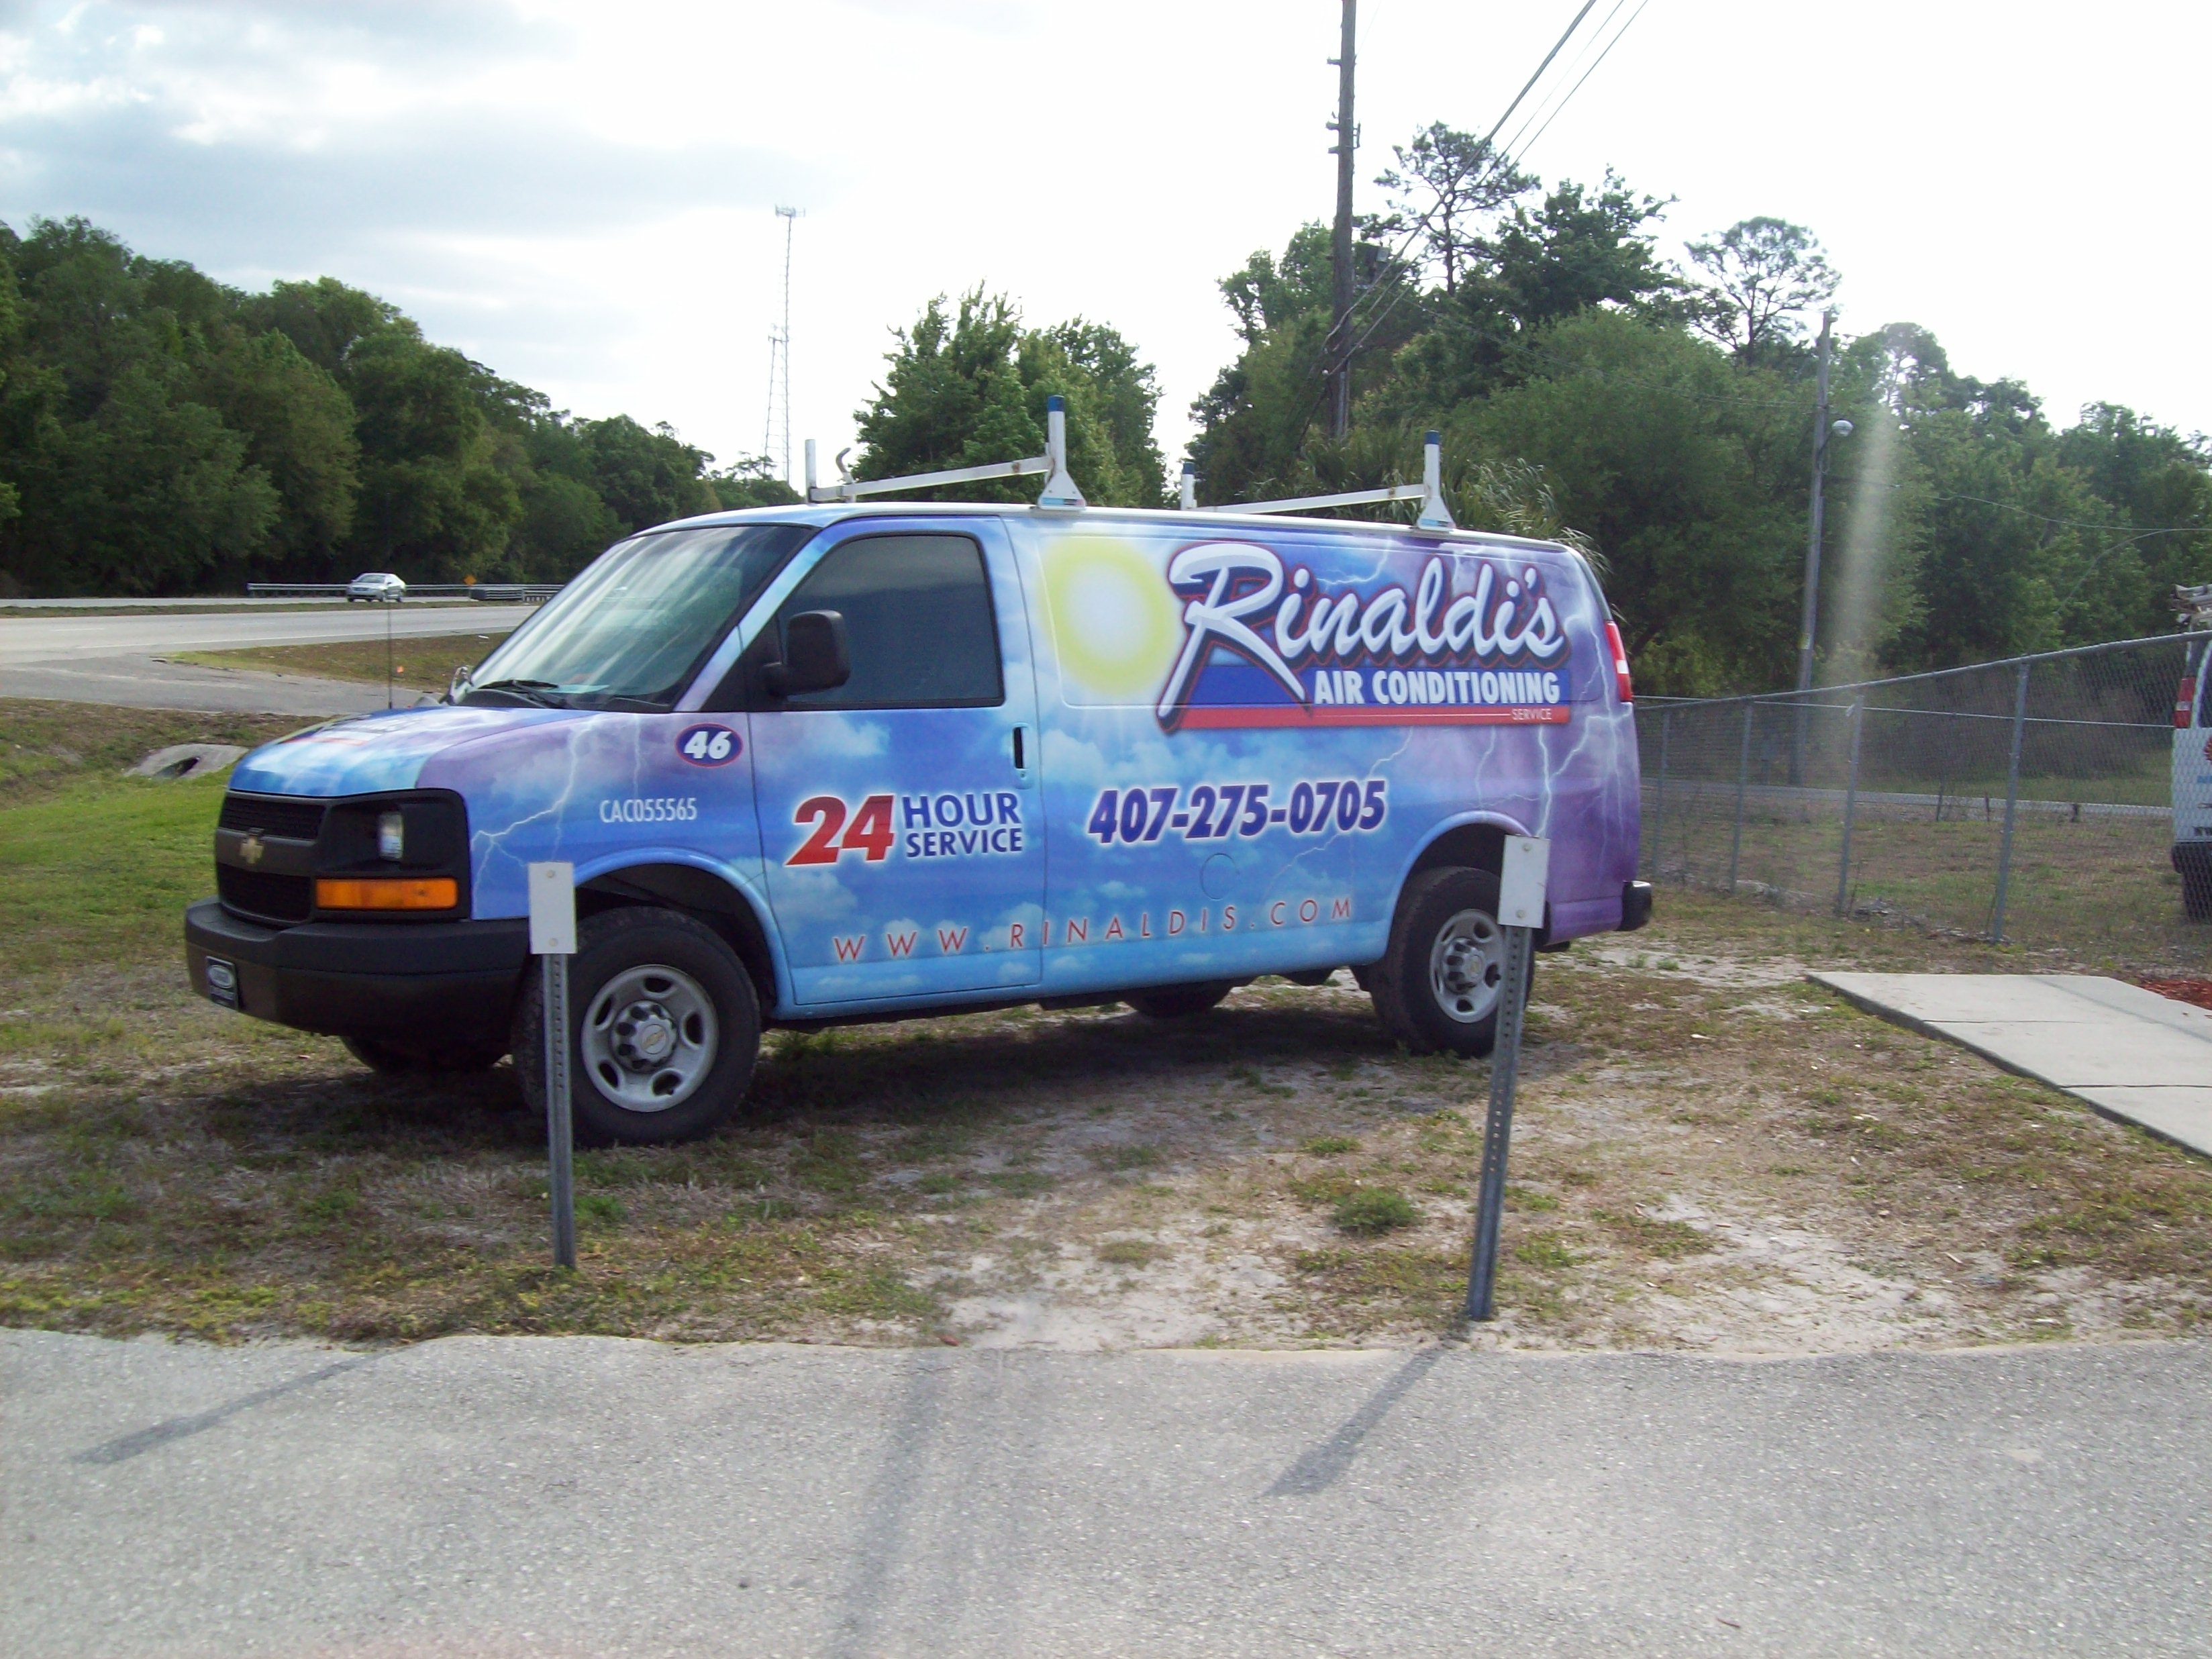 Cool image about Plumbing and Heating Melbourne FL - it is cool